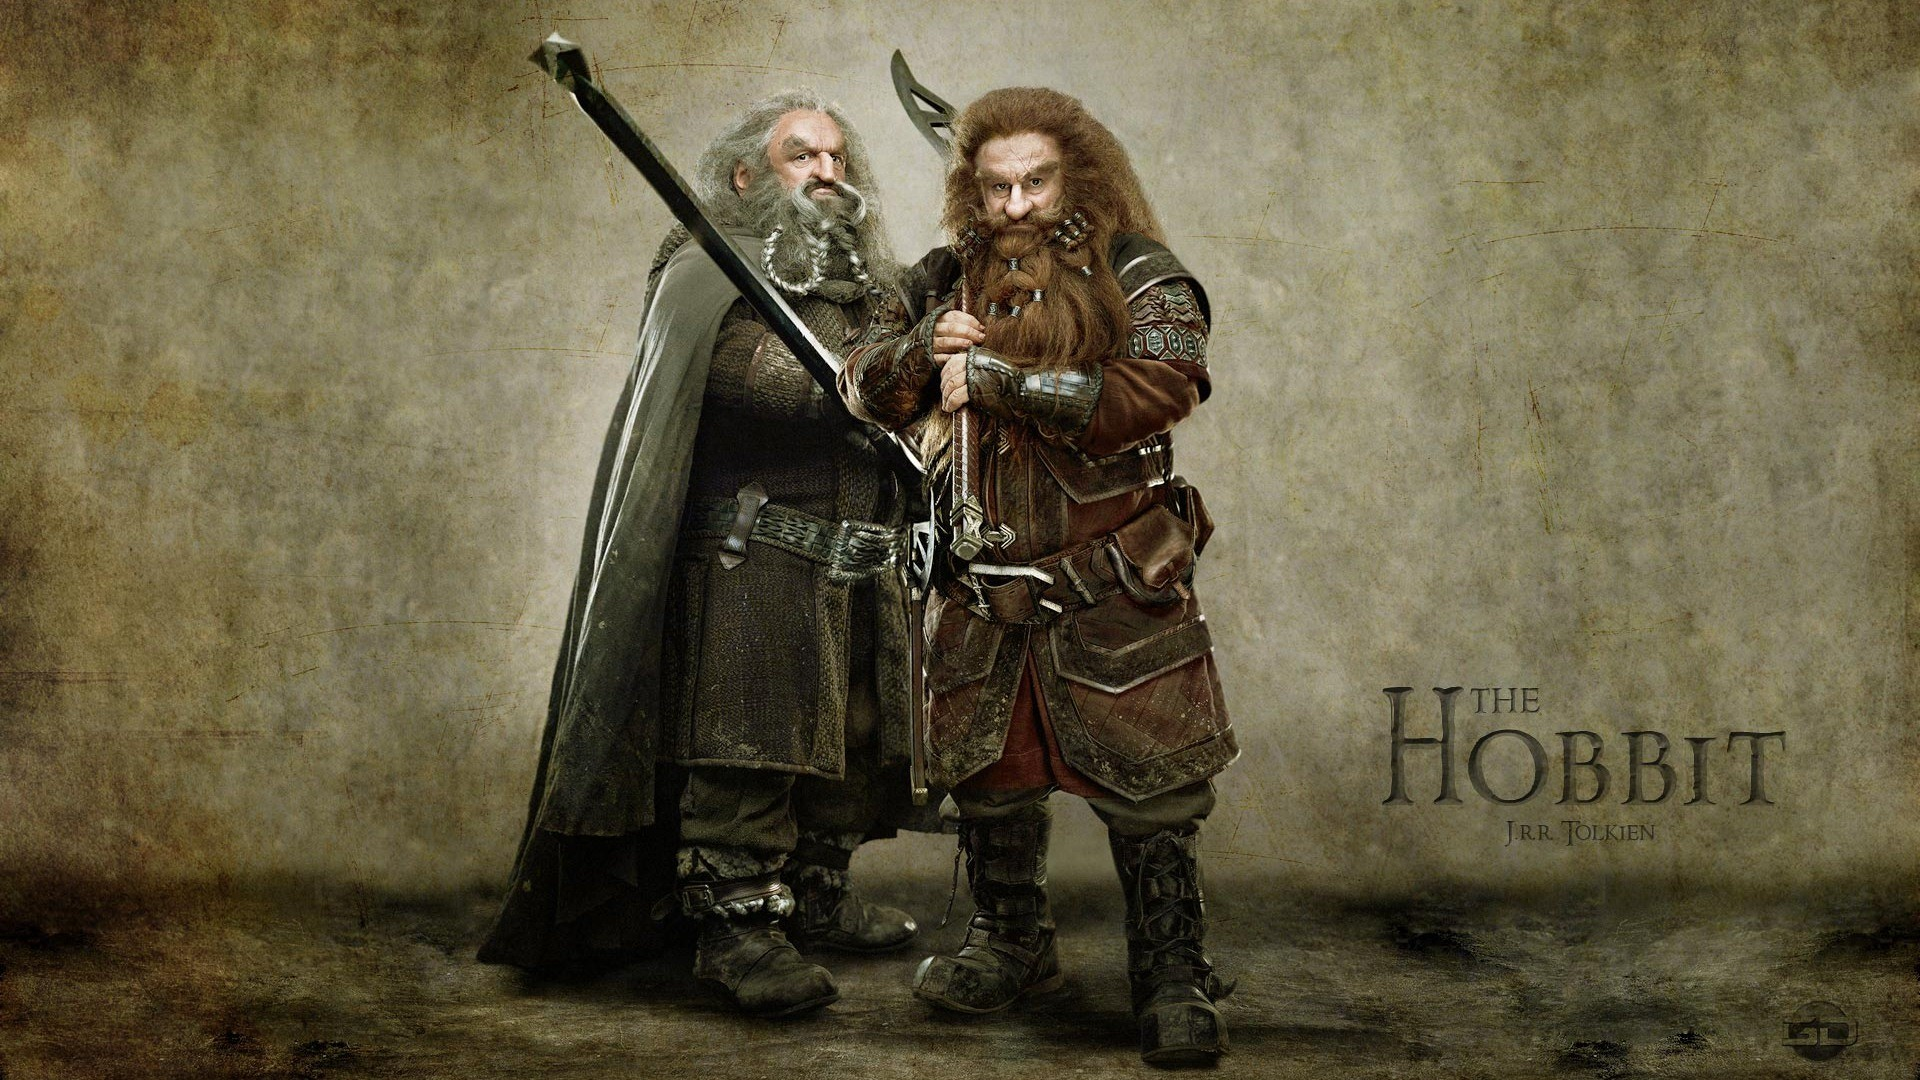 The Hobbit: An Unexpected Journey HD wallpapers #6 – 1920×1080.